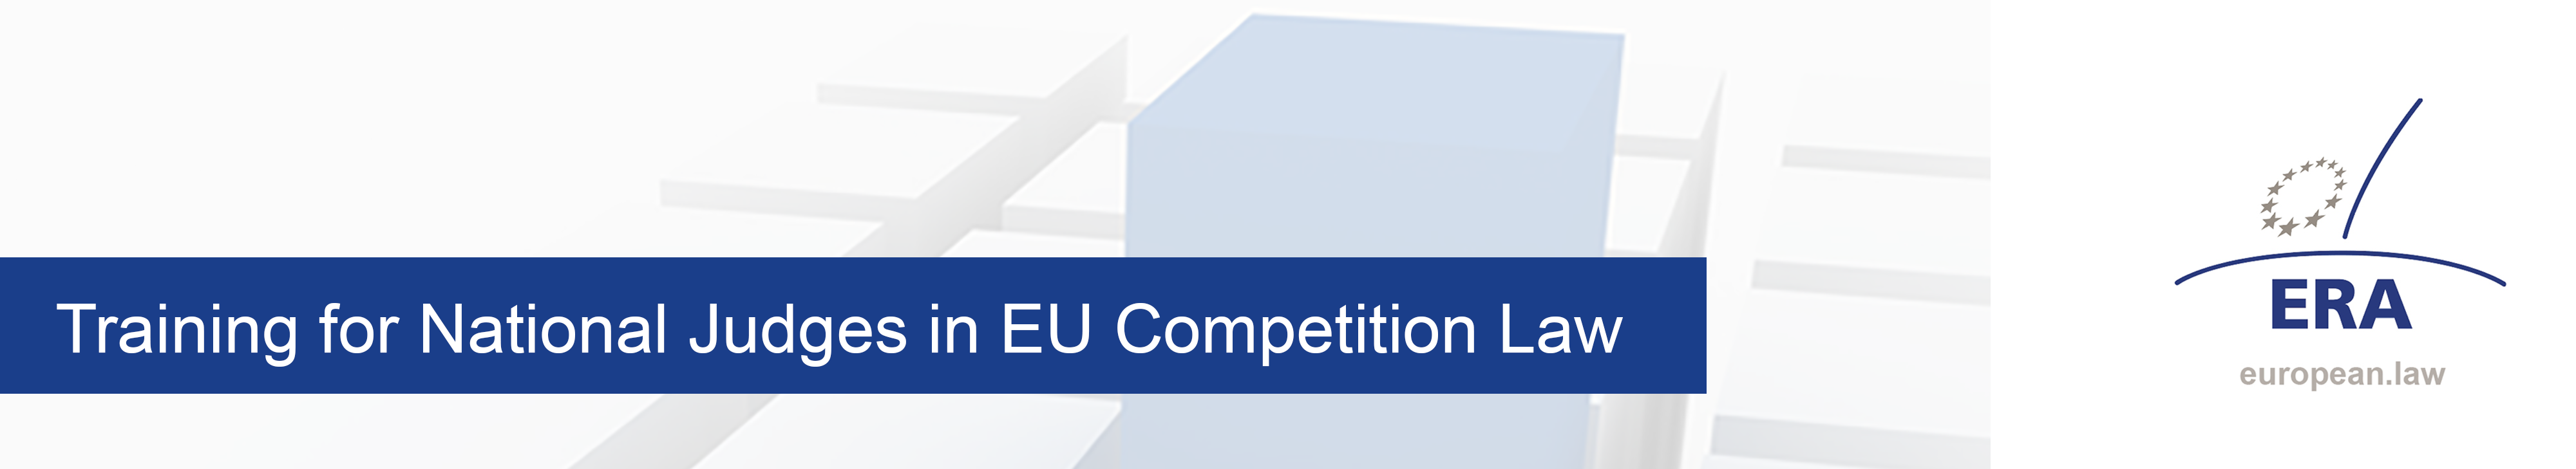 Training for National Judges in EU Competition Law